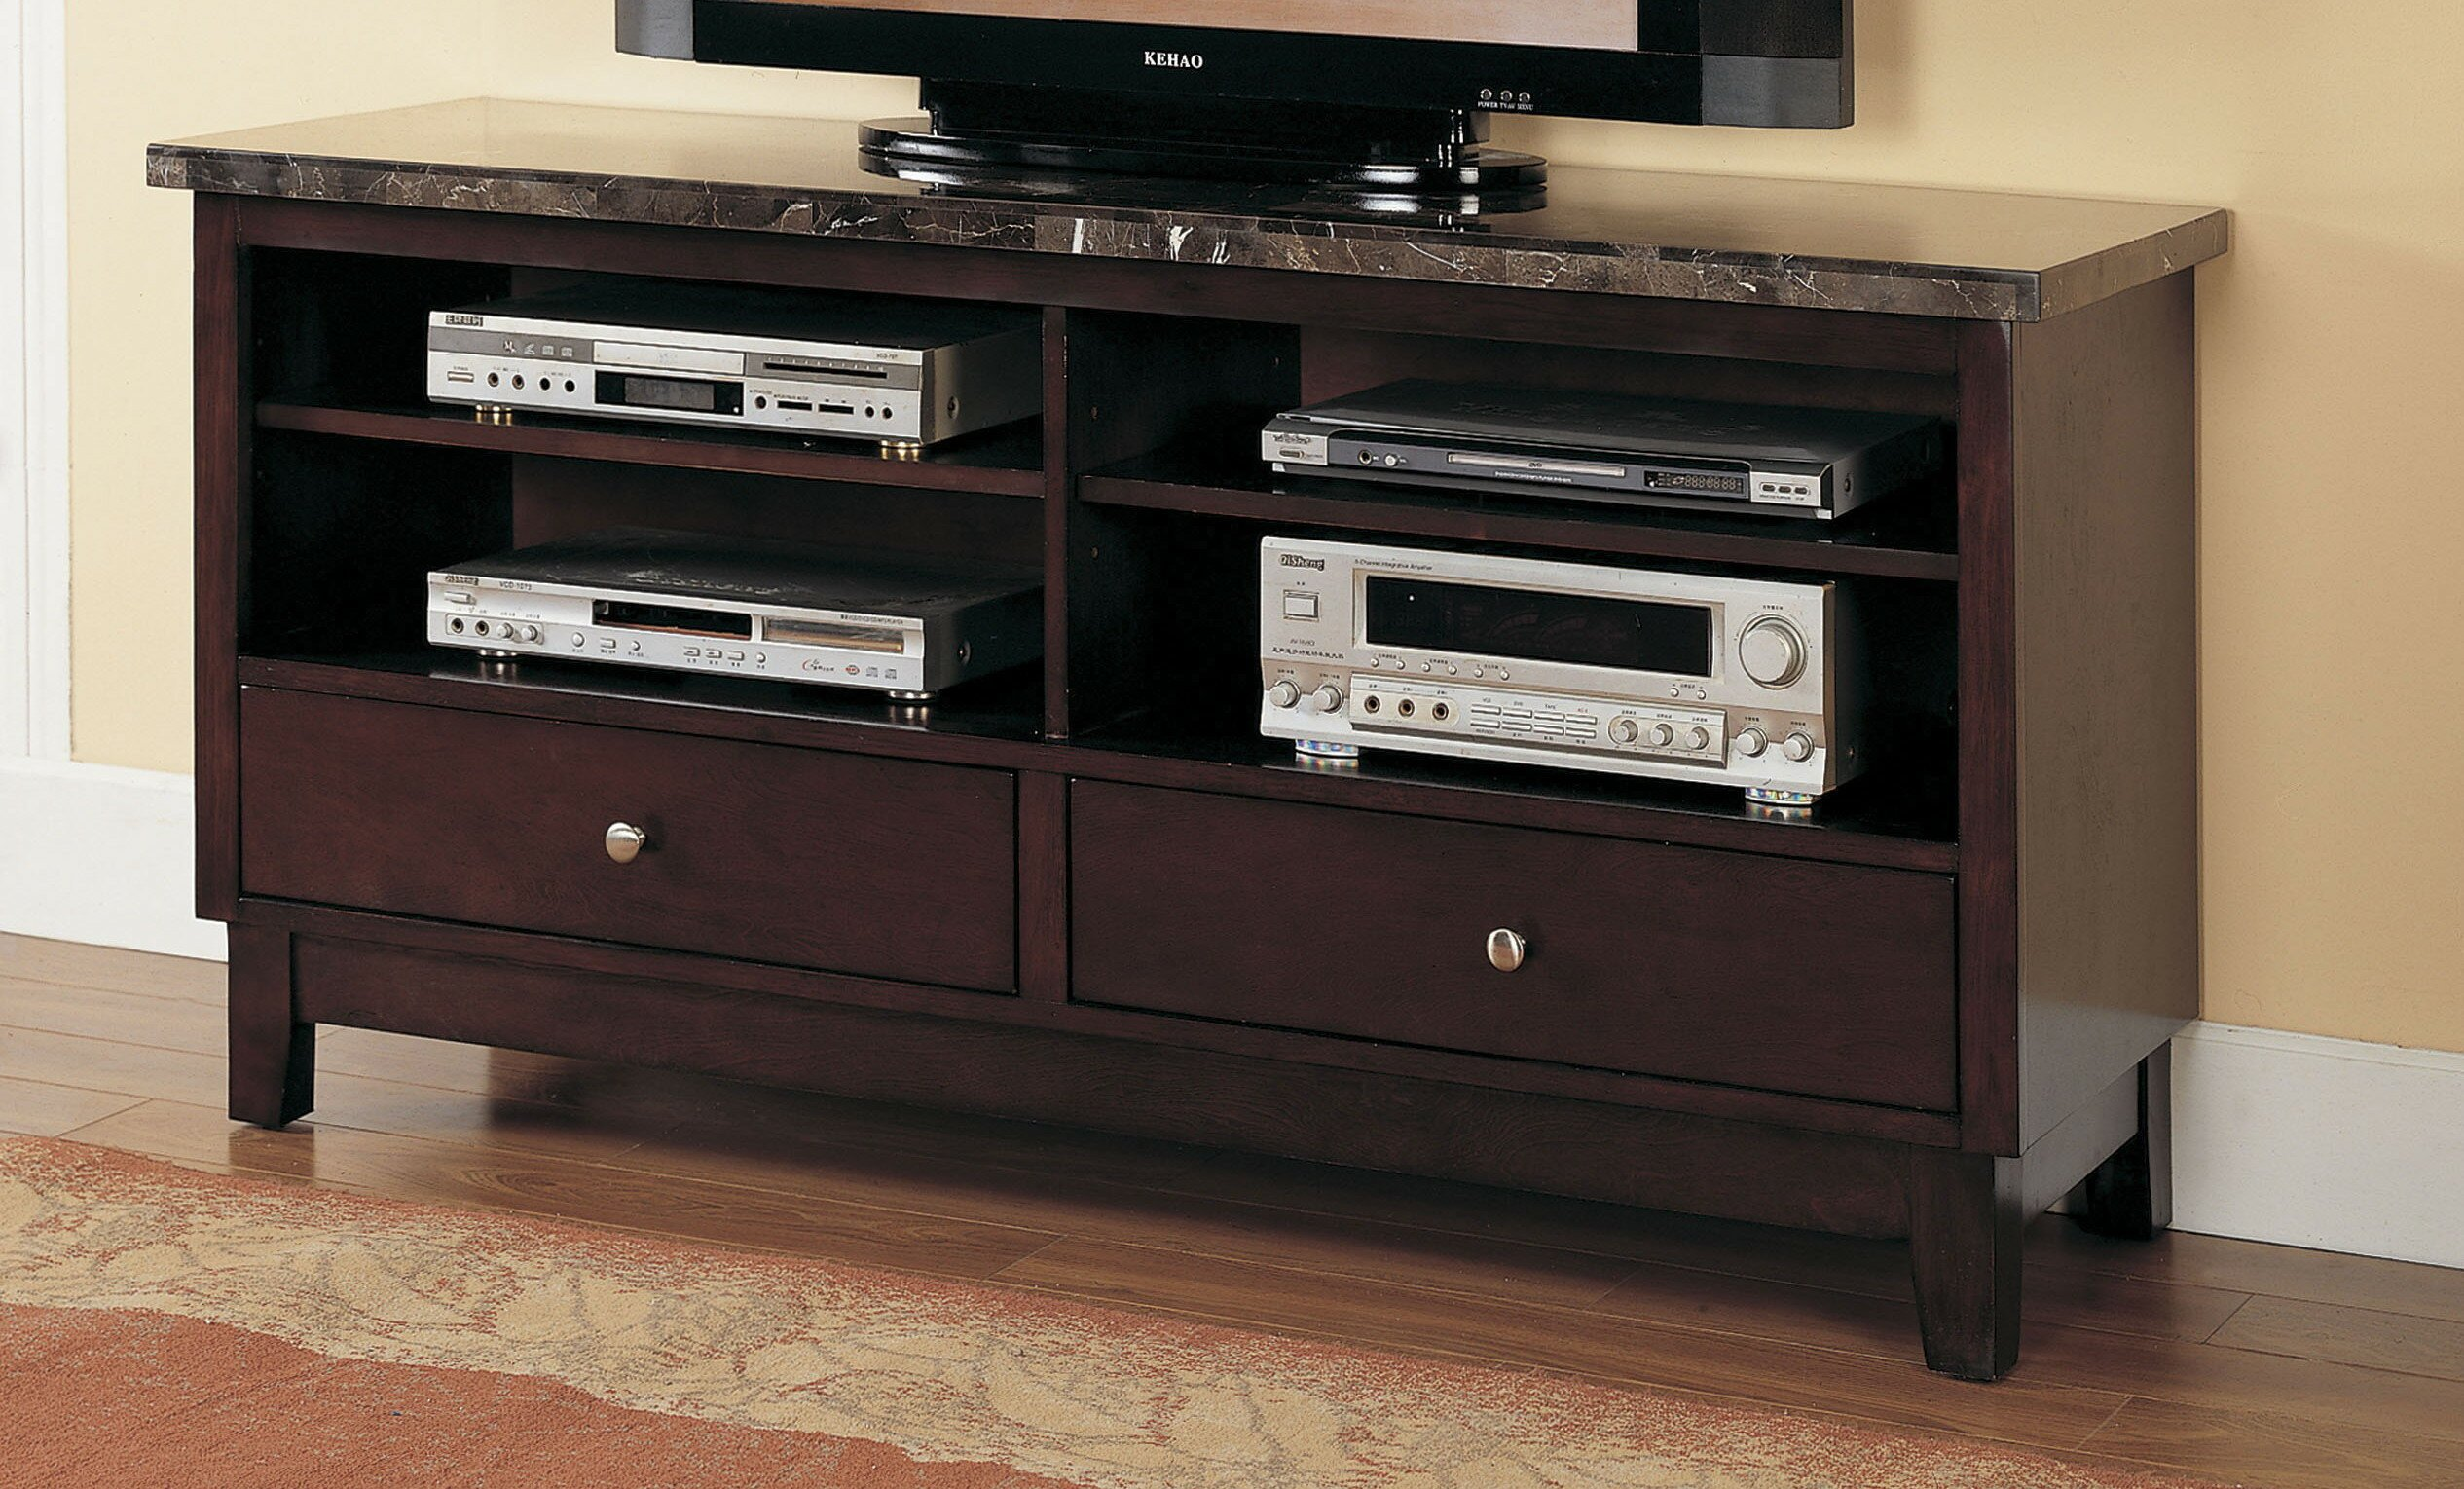 Tall Tv Stands for Bedroom Luxury Shanks Tv Stand for Tvs Up to 65 Inches